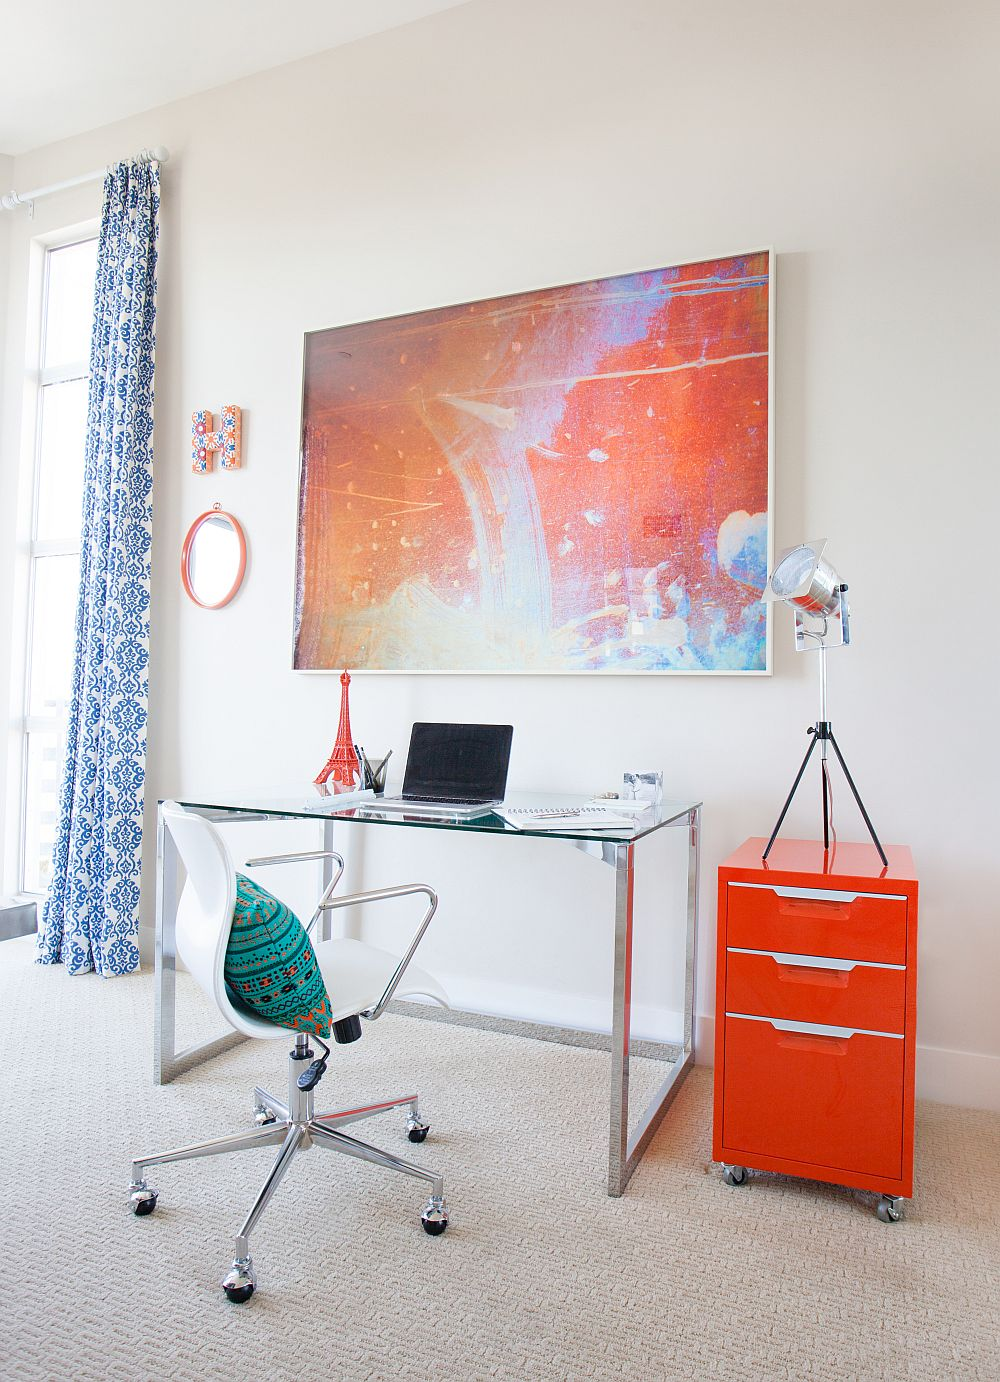 Lovely orange desk steals the show in the home office